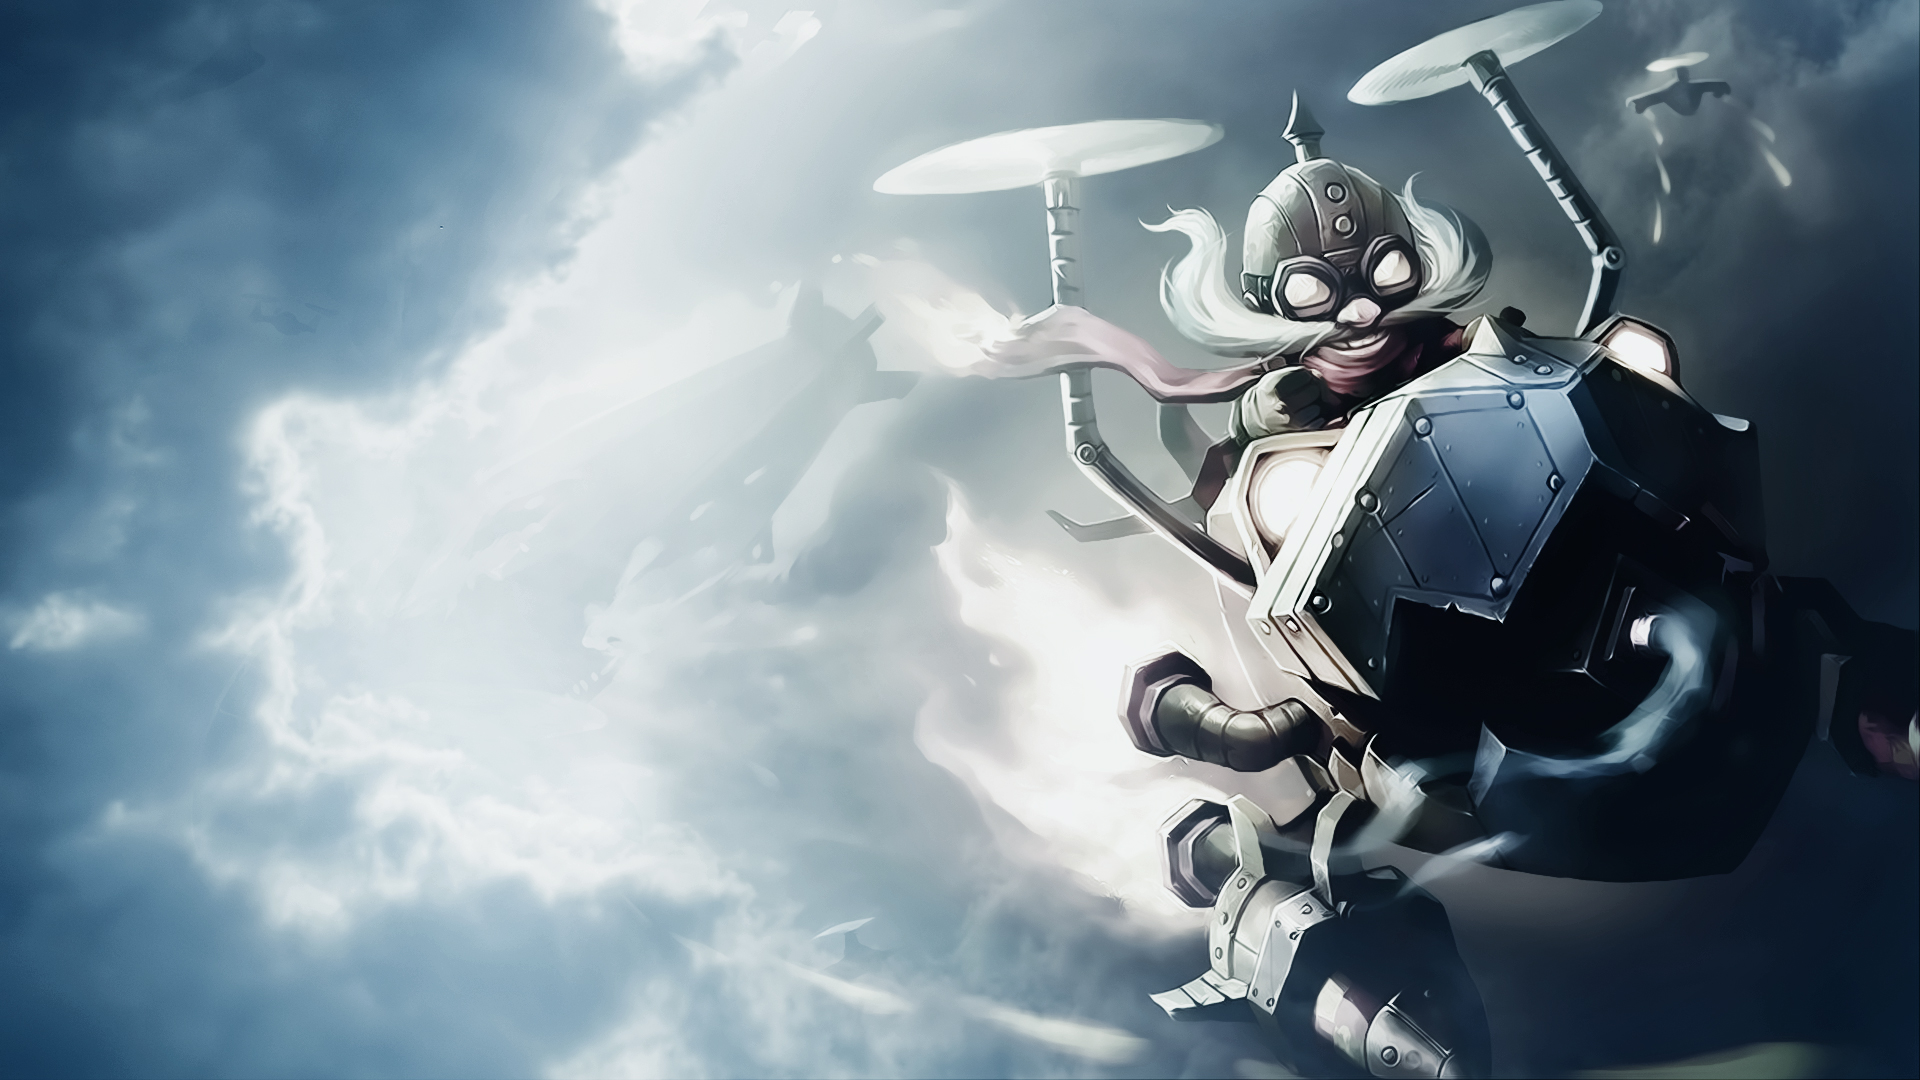 League of Legends wallpaper 133